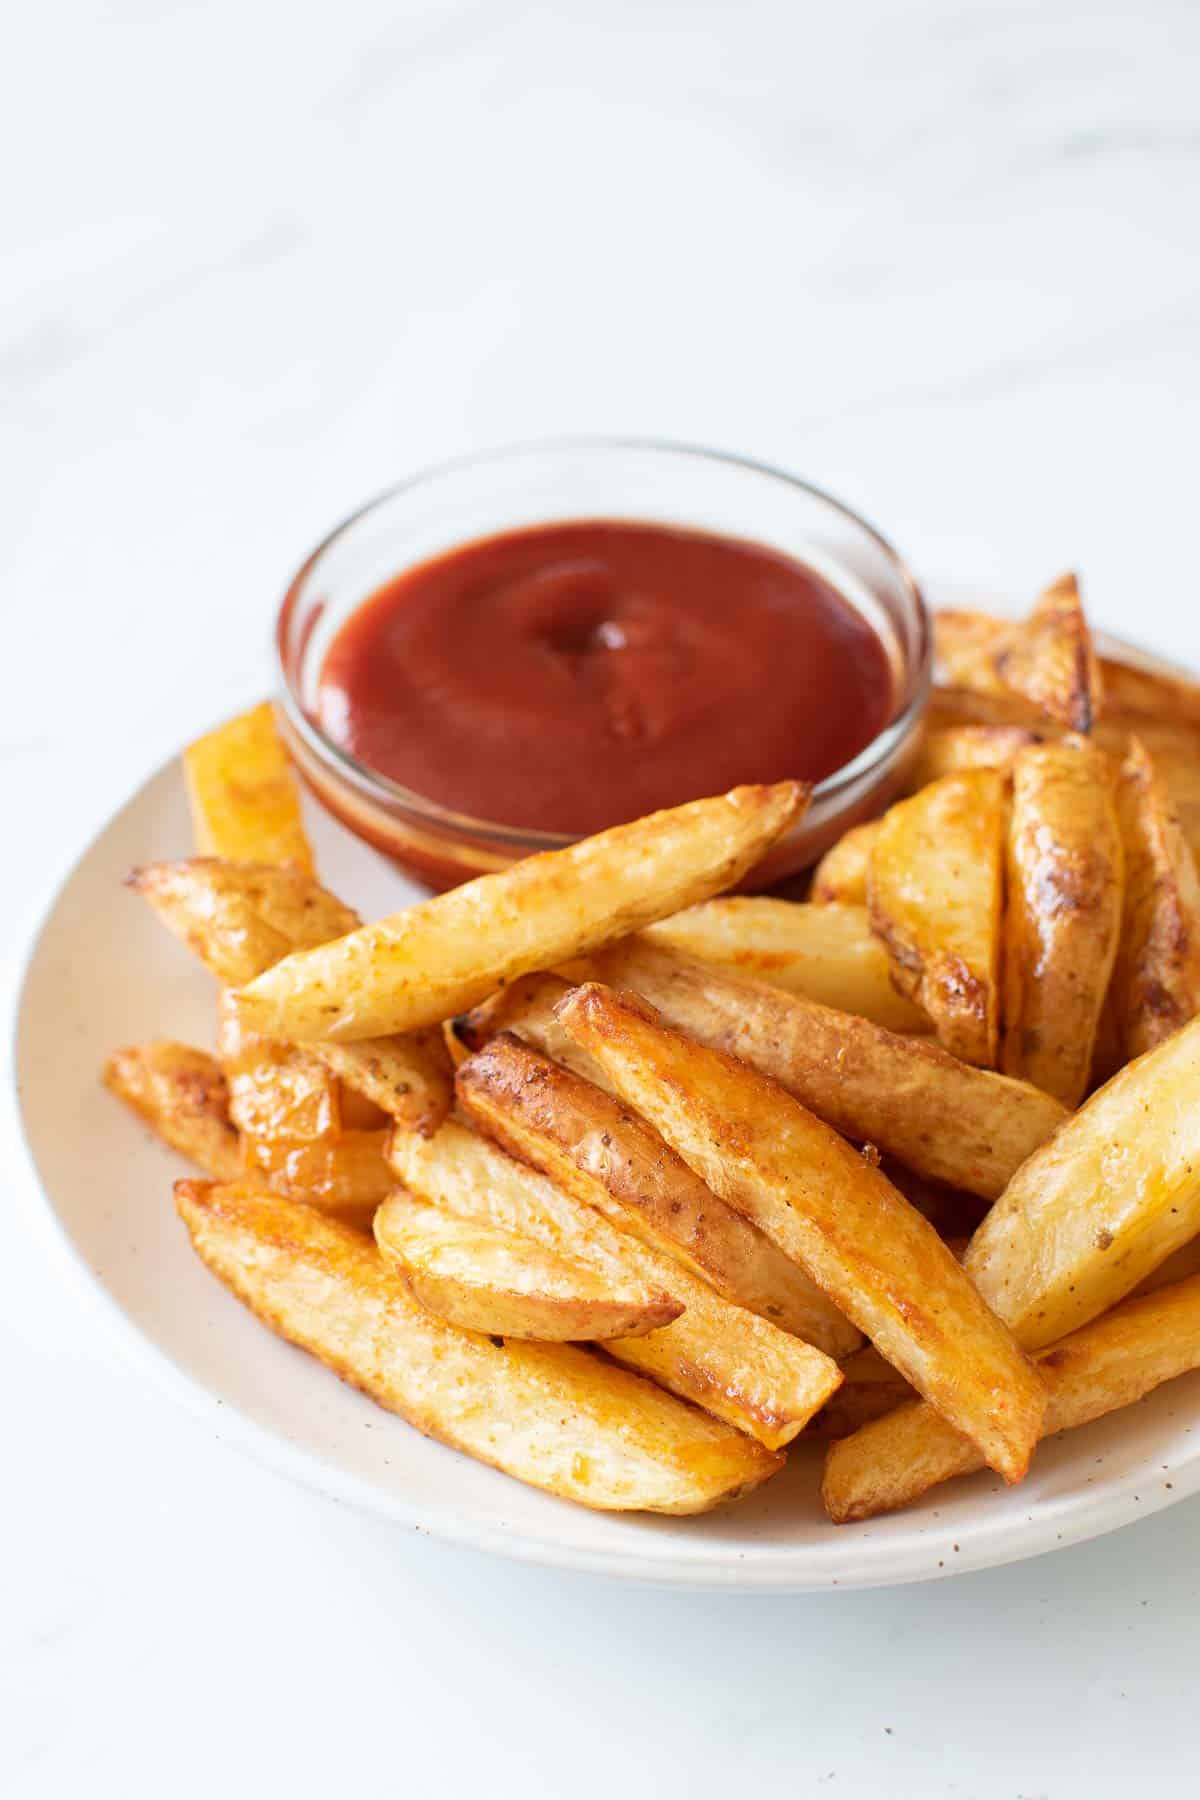 Baked french fries and ketchup.